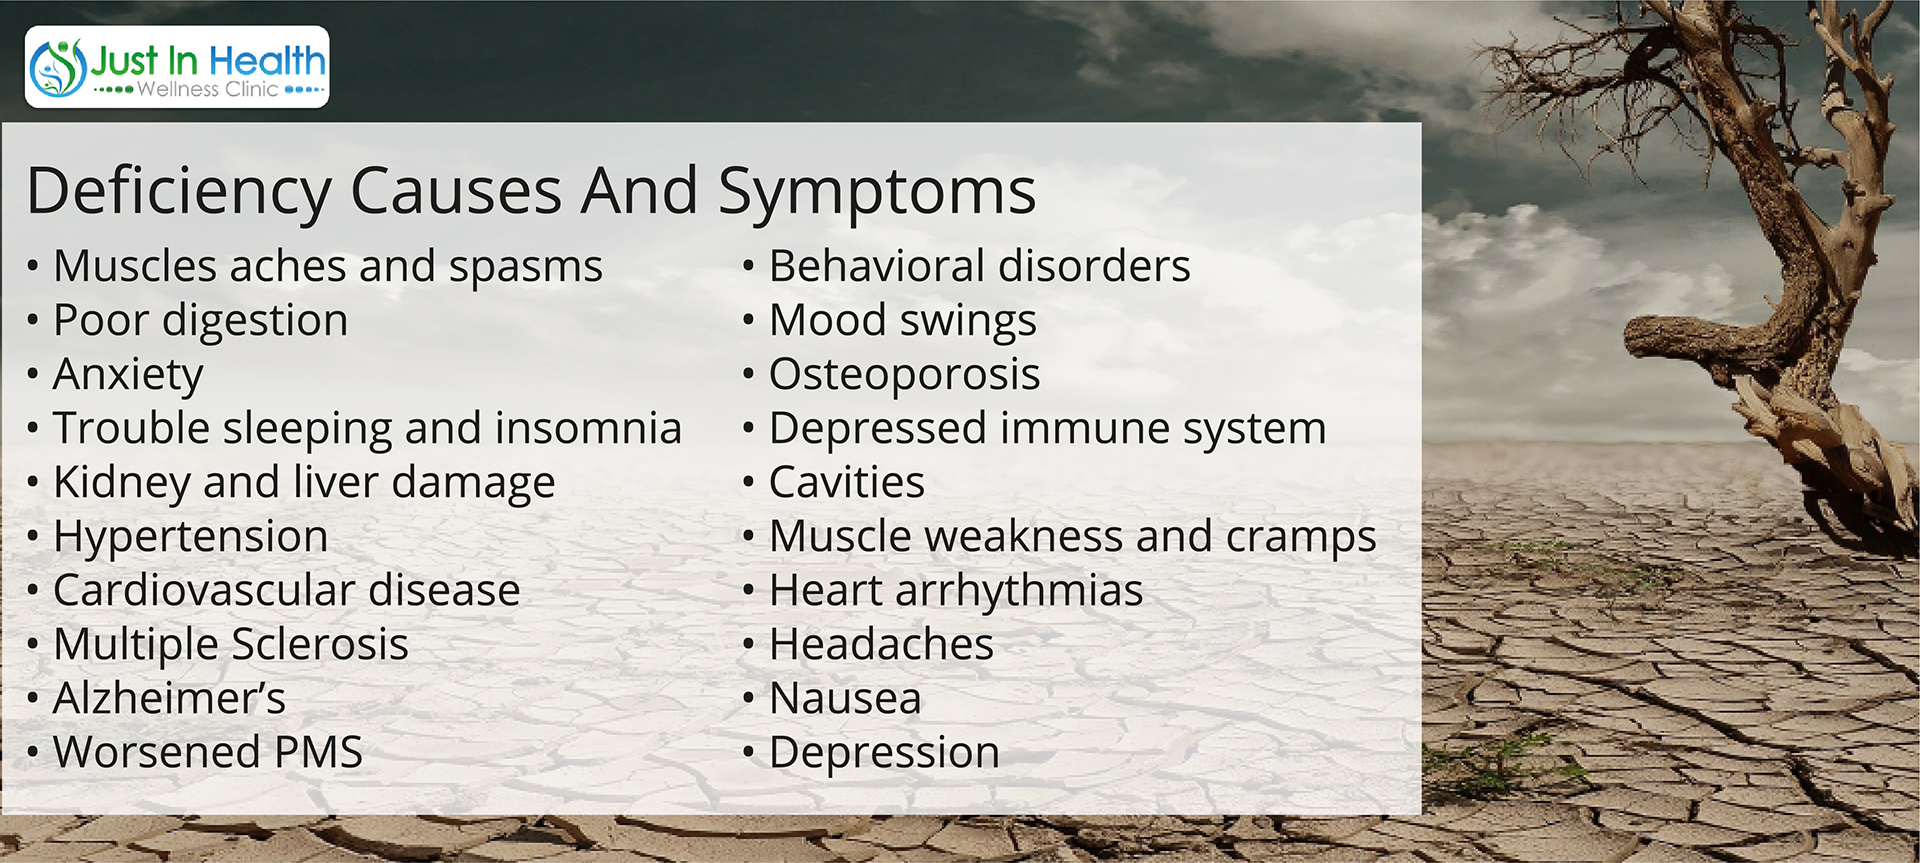 DEFICIENCY CAUSES AND SYMPTOMS